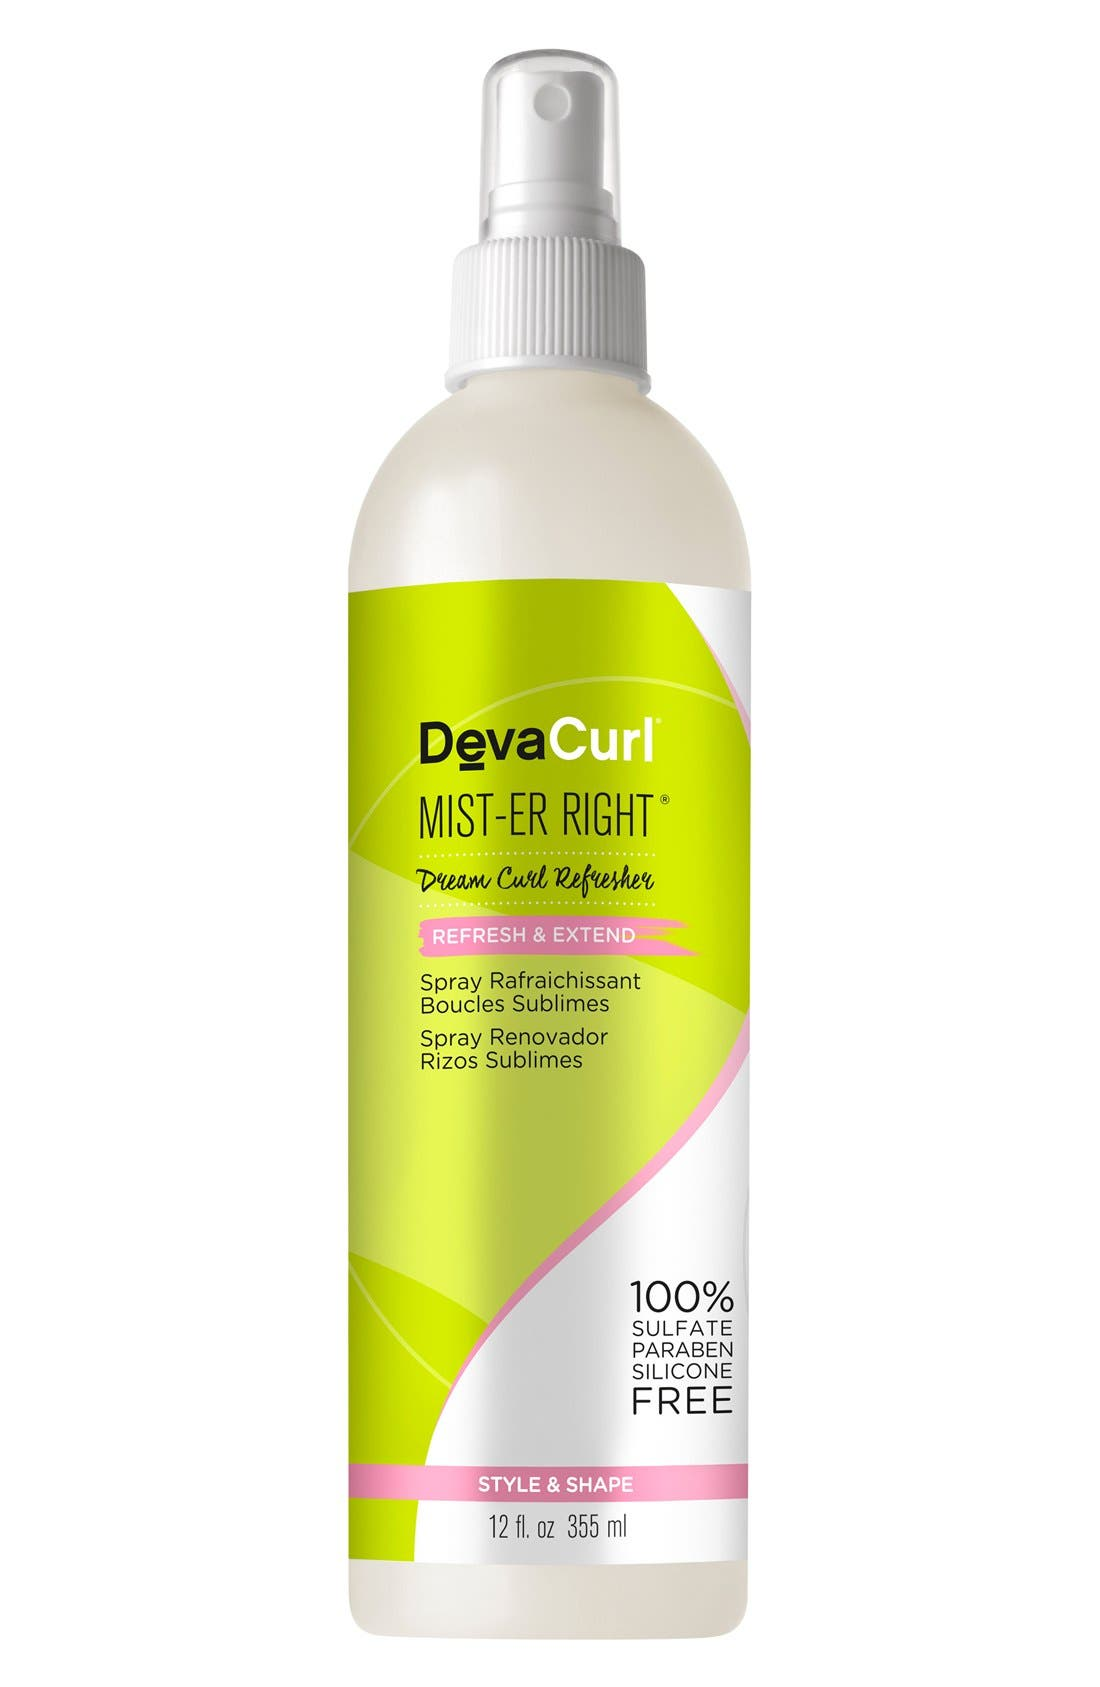 DEVACURL Mist-er Right Dream Curl Refresher, Main, color, NO COLOR